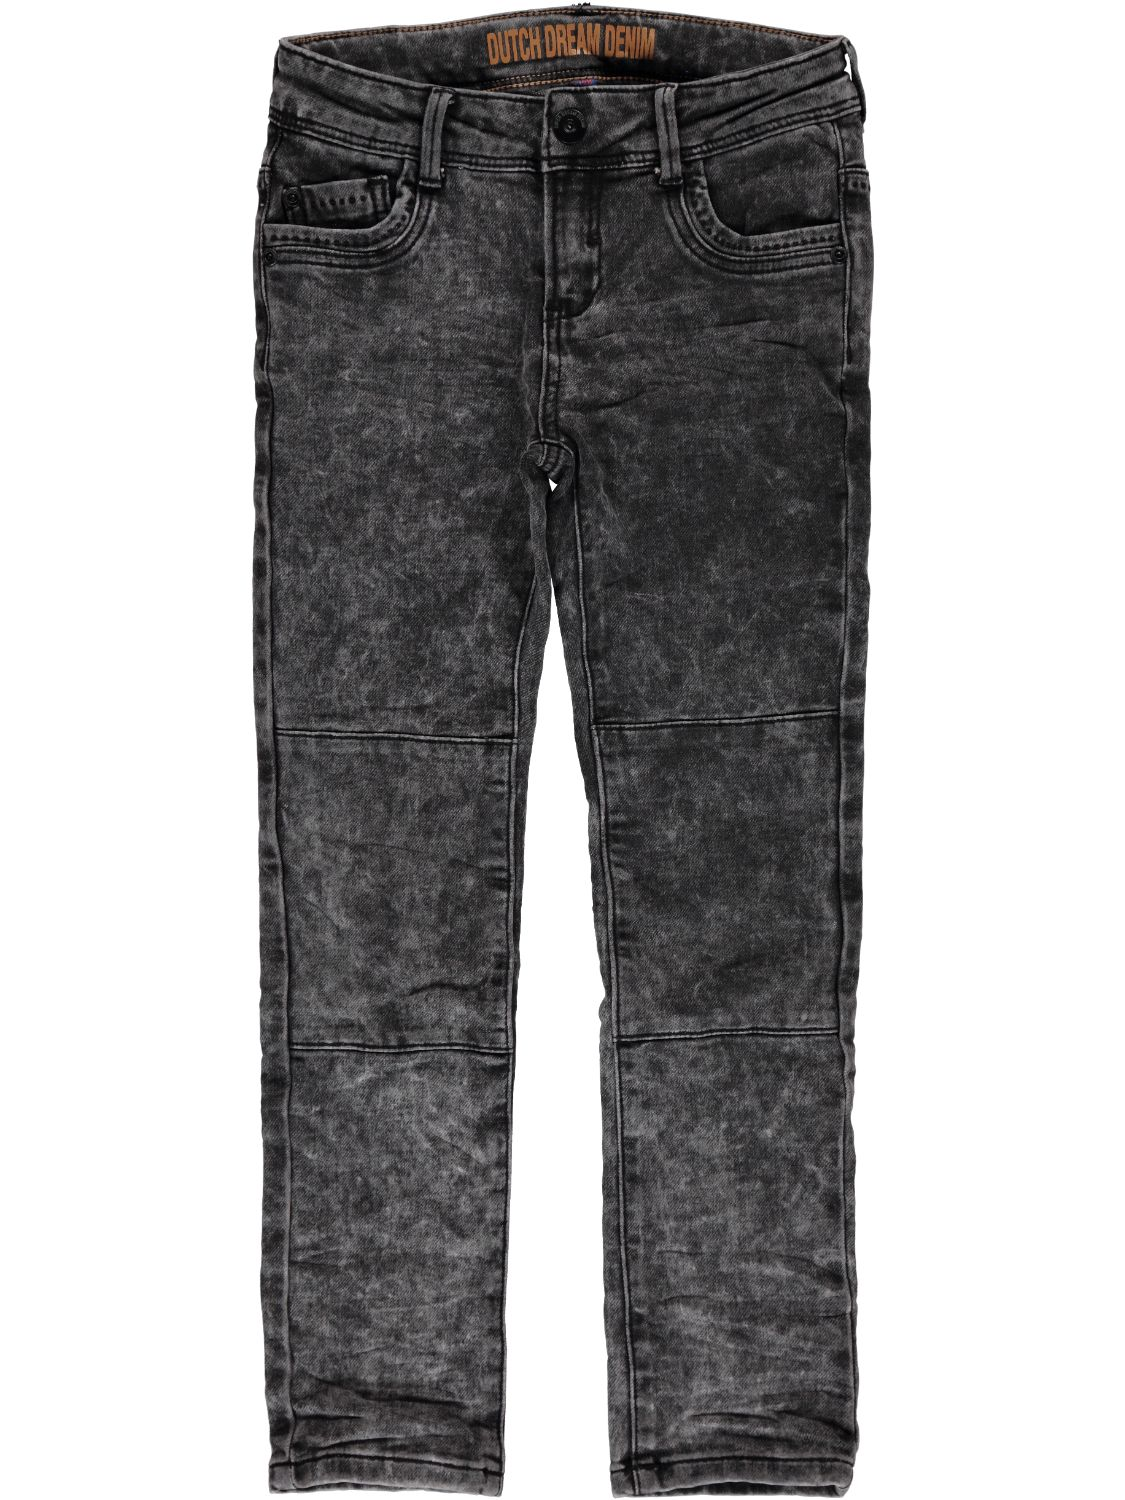 Dutch Dream Denim Lange broek